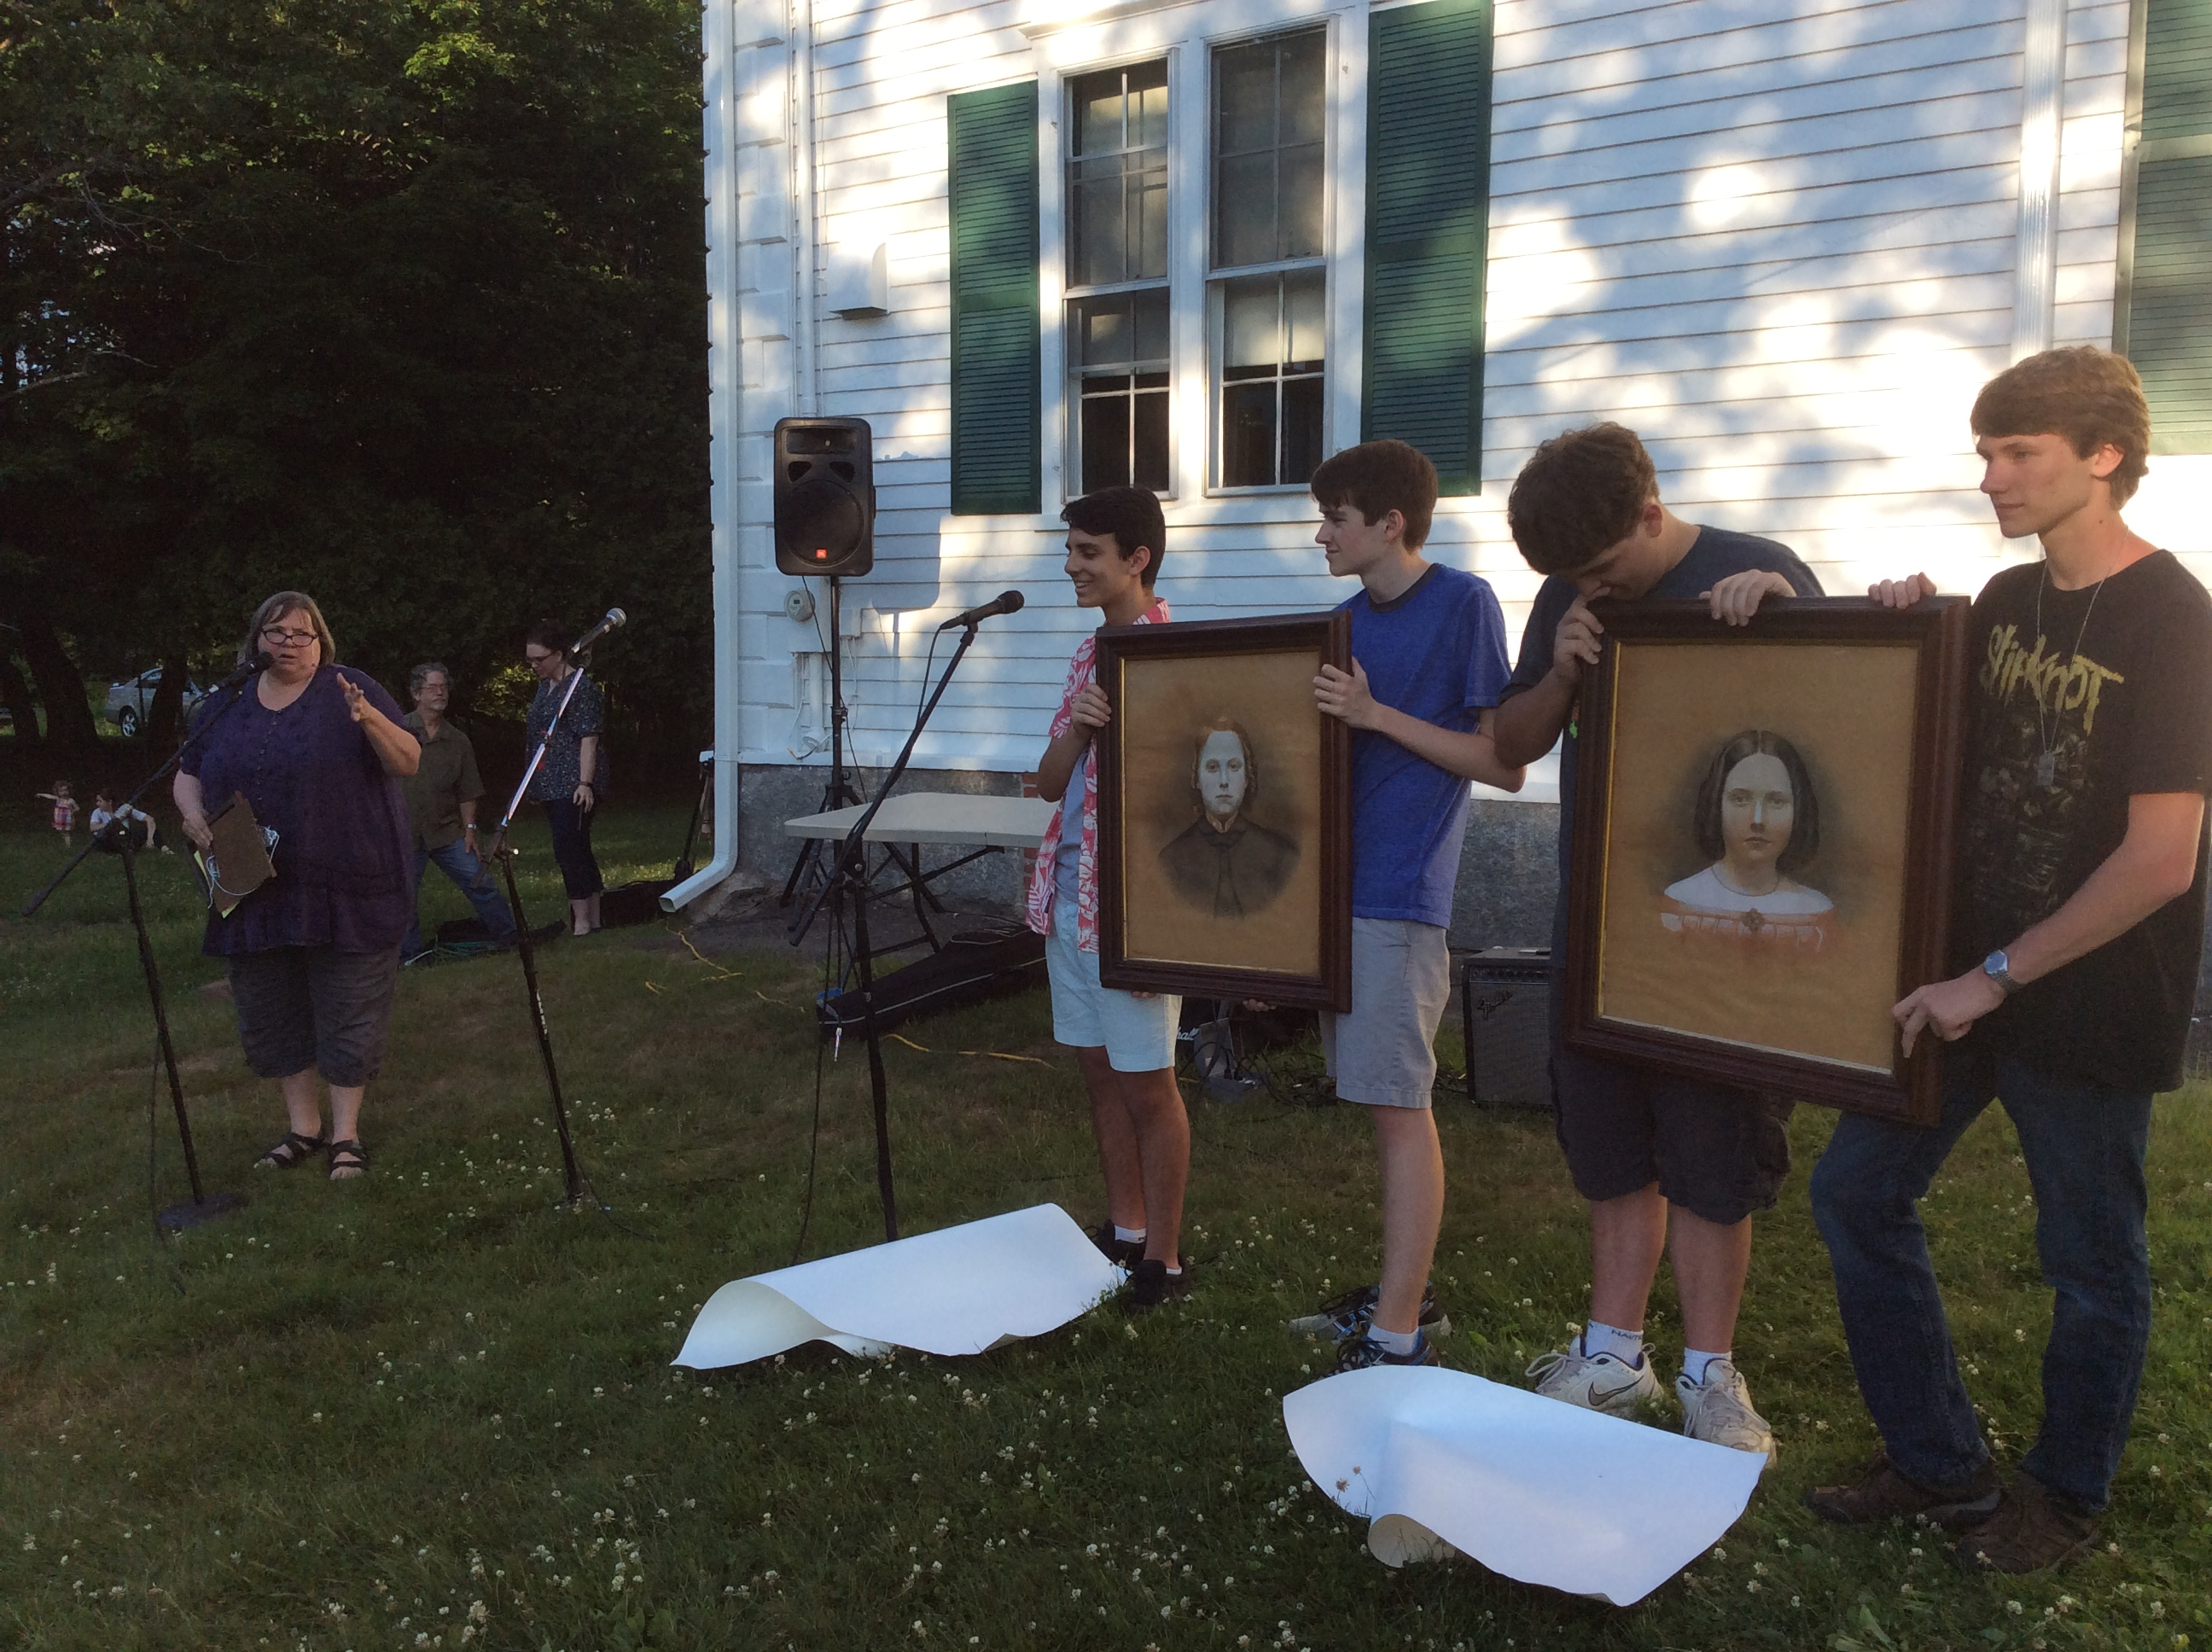 Sawin portraits revealed at Hitchcock's Make Music Day